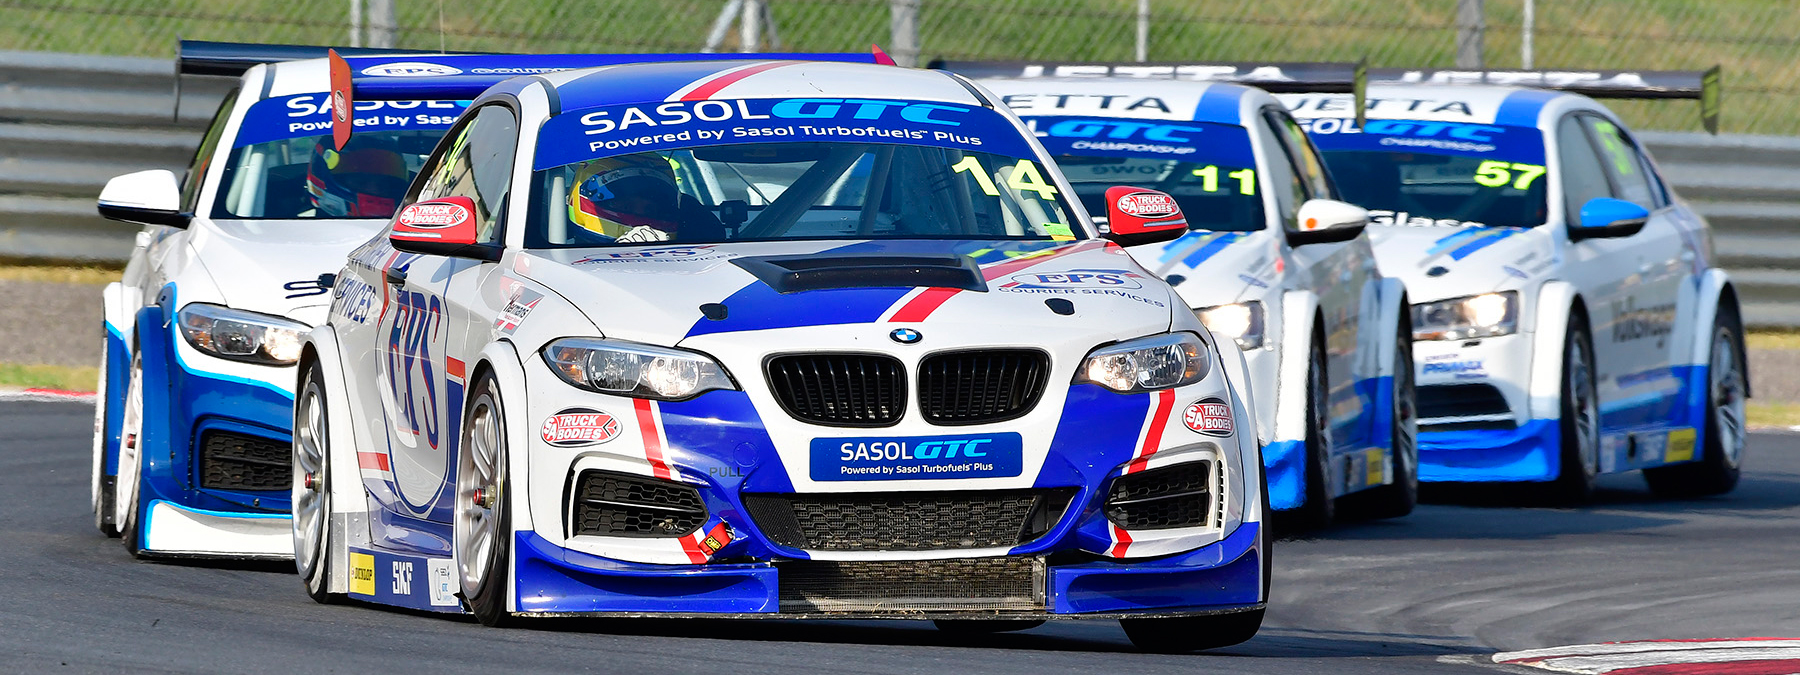 Two-Day-Motorsport-Feast-at-Zwartkops-Raceway-16-to-17-June-2017